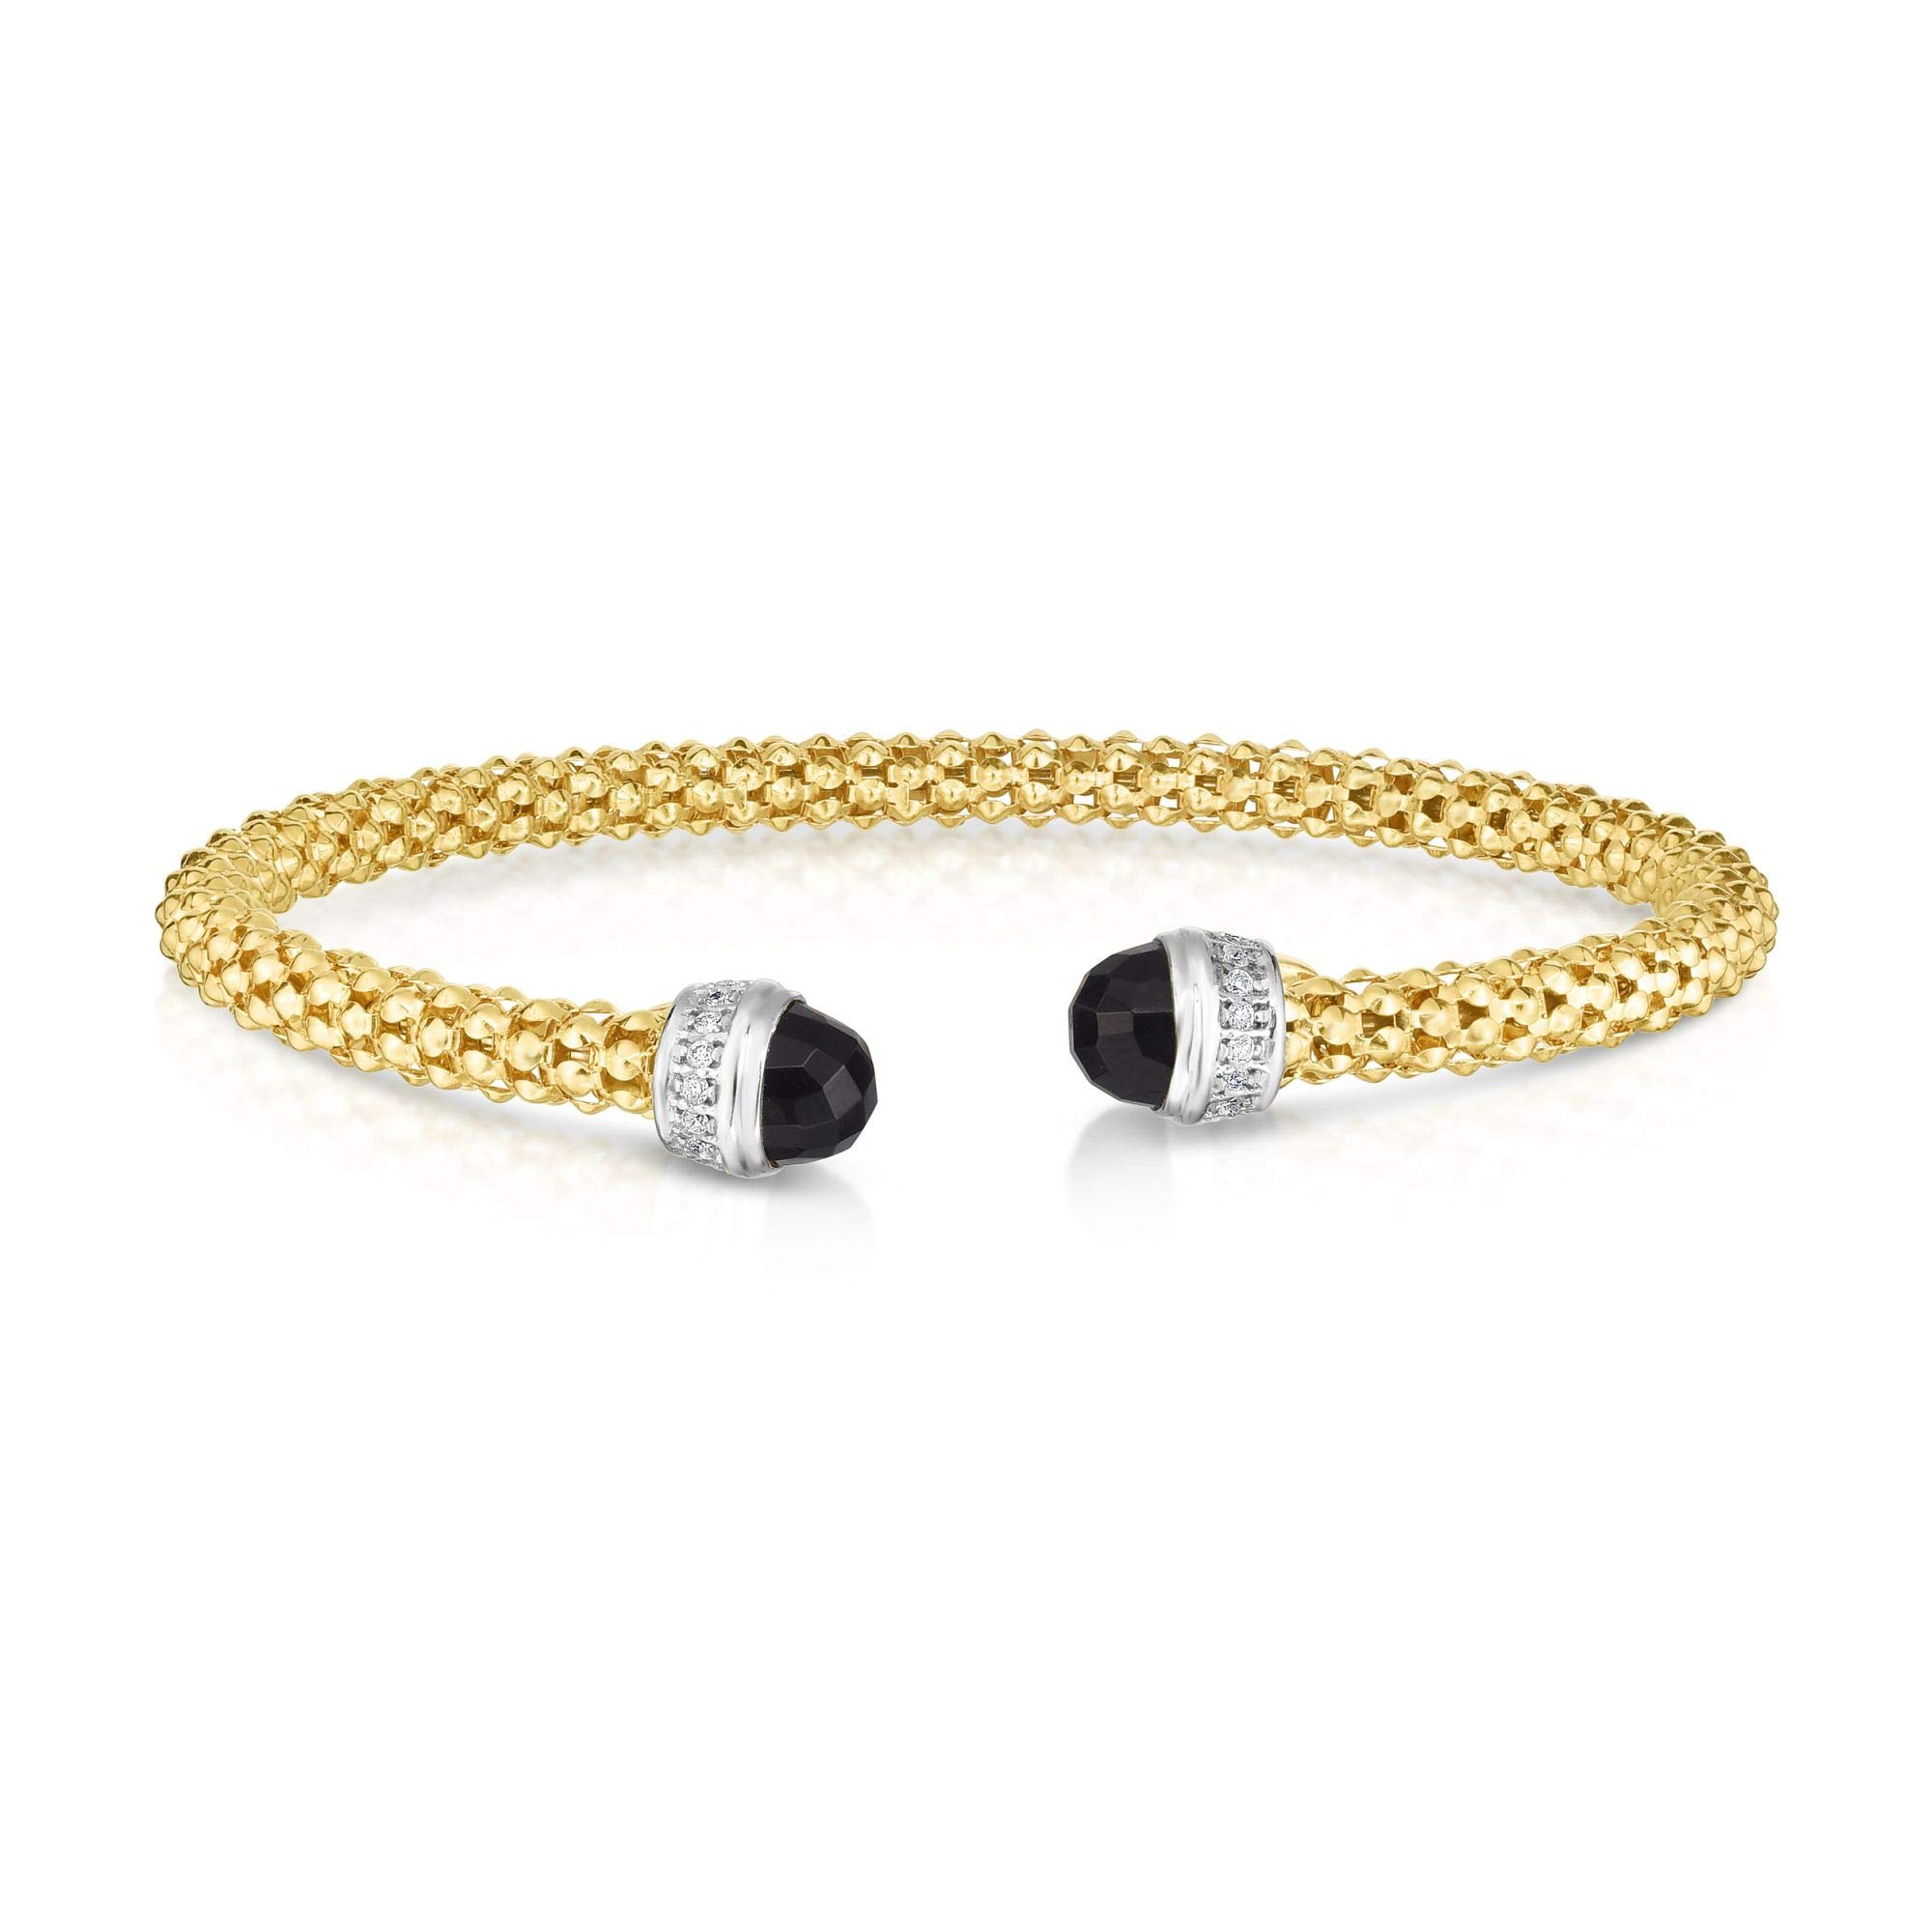 14K Yellow Gold 7mm Textured Fancy Cuff Popcorn Bangle 0.09ct Diamonds and 2ct Round Black Onyx by IcedTime (Image #1)